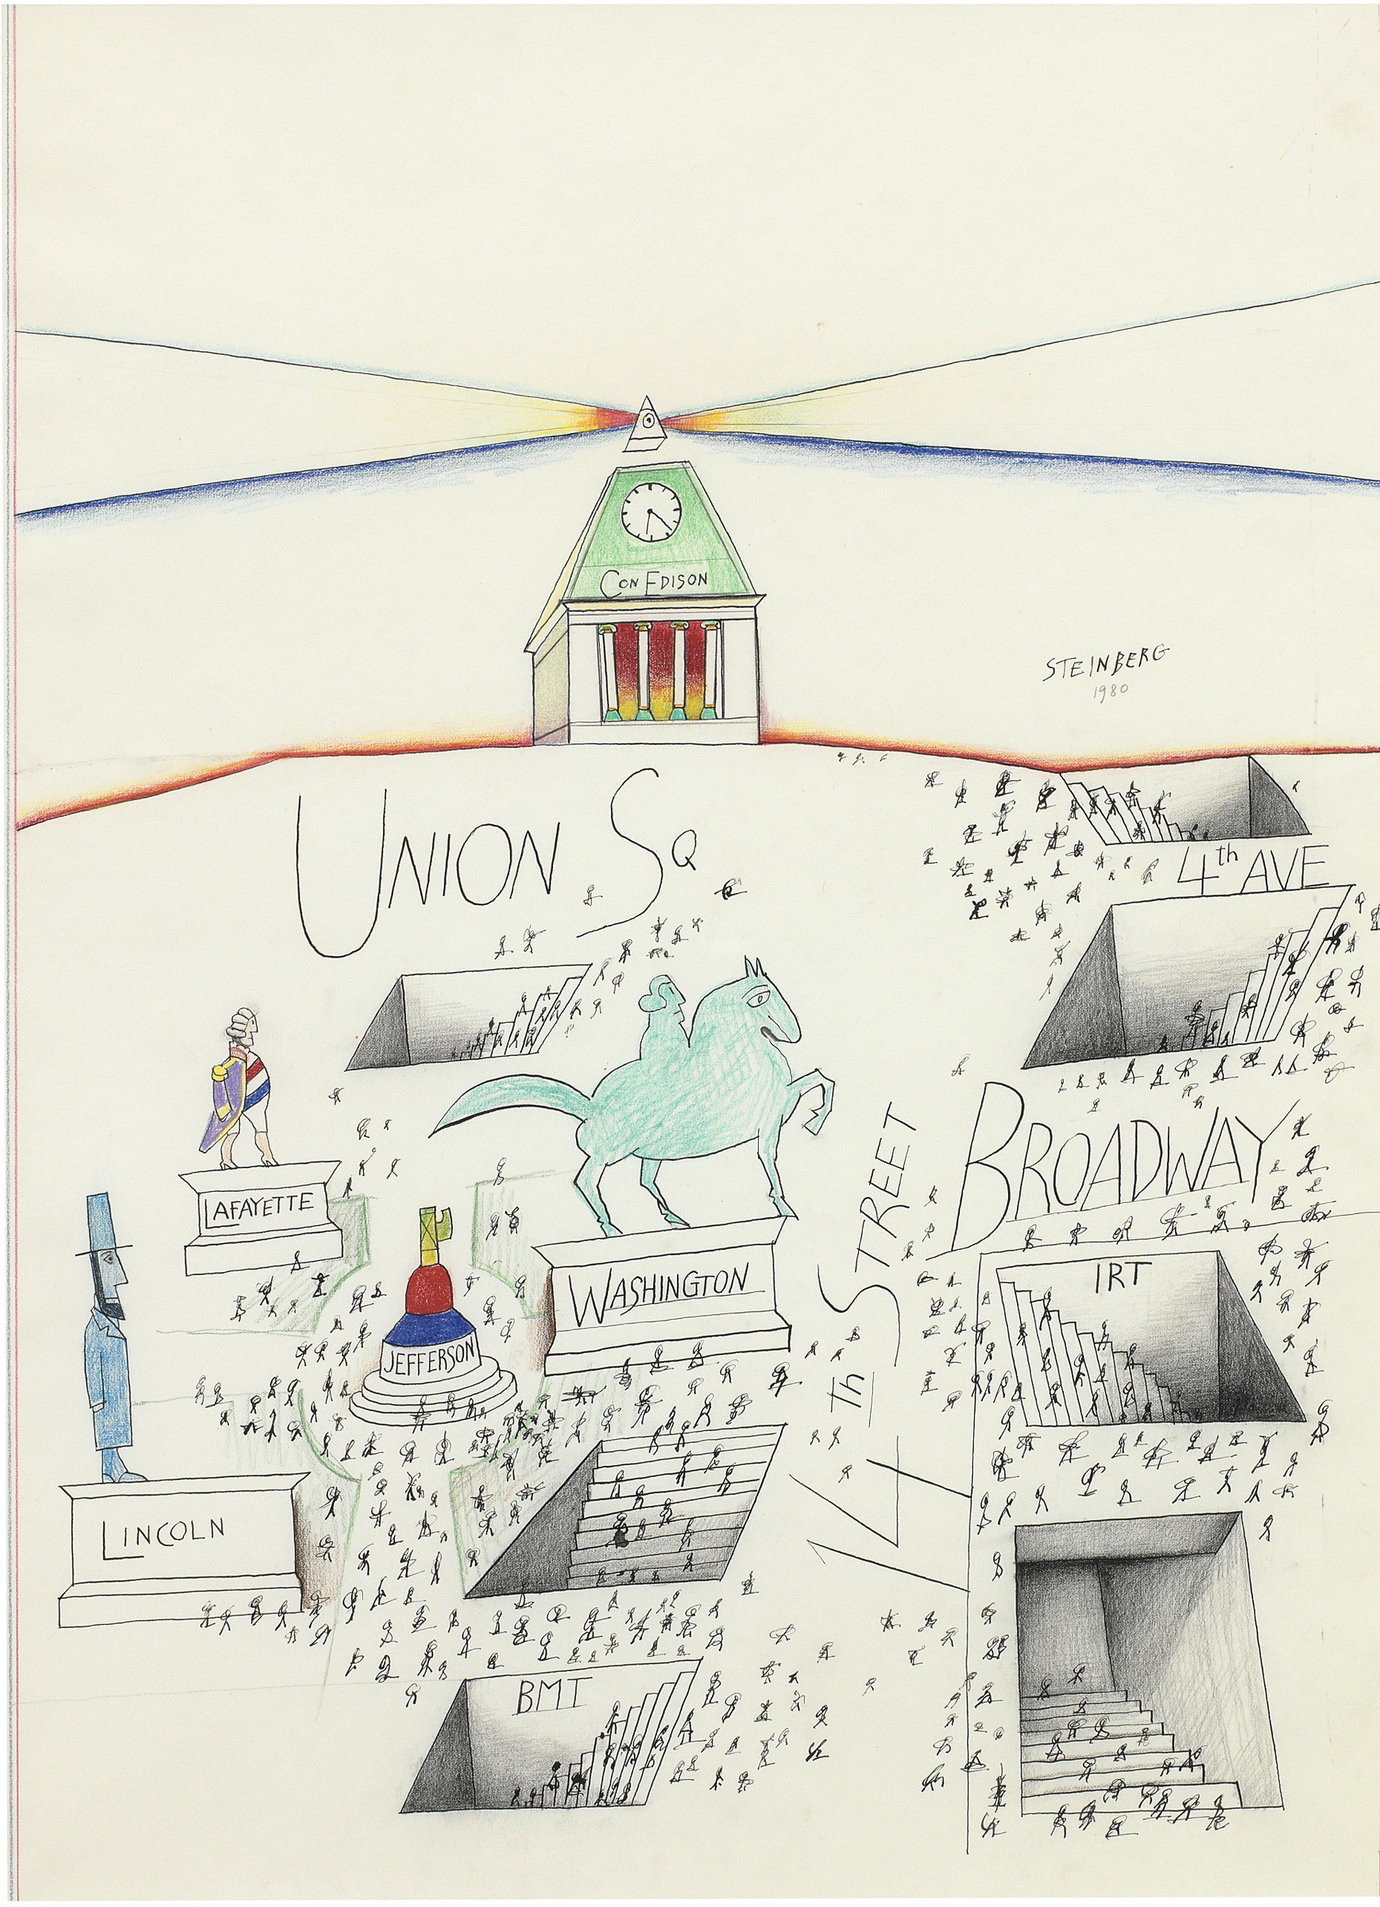 ", 1980. colored pencil, crayon, graphite, ink and pastel on paper, 29 x 19-3/4"" (73.7 x 50.2 cm)."